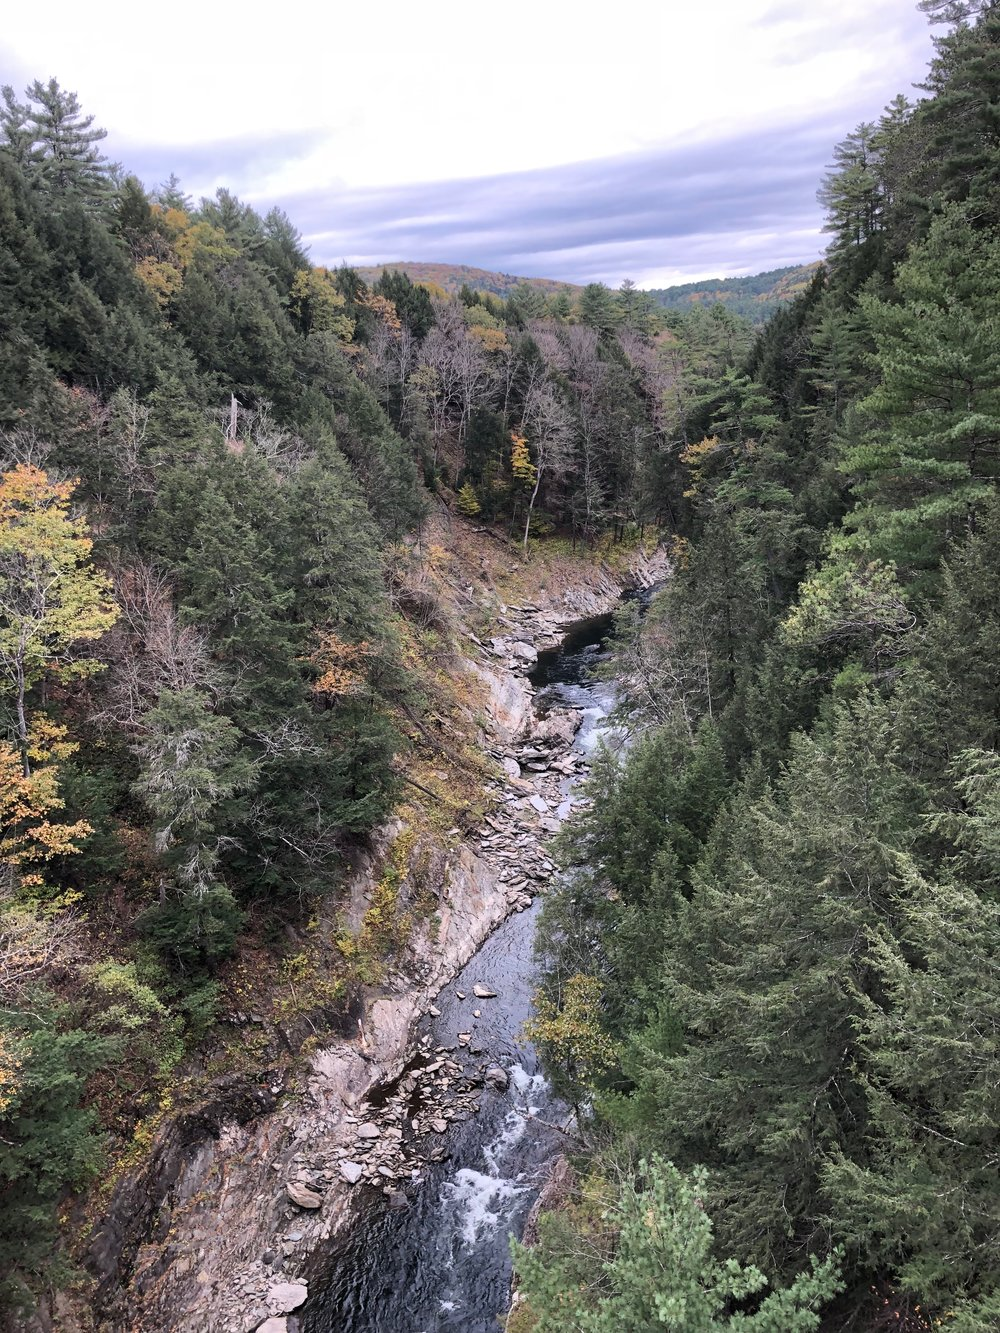 quechee gorge, vermont's little grand canyon!